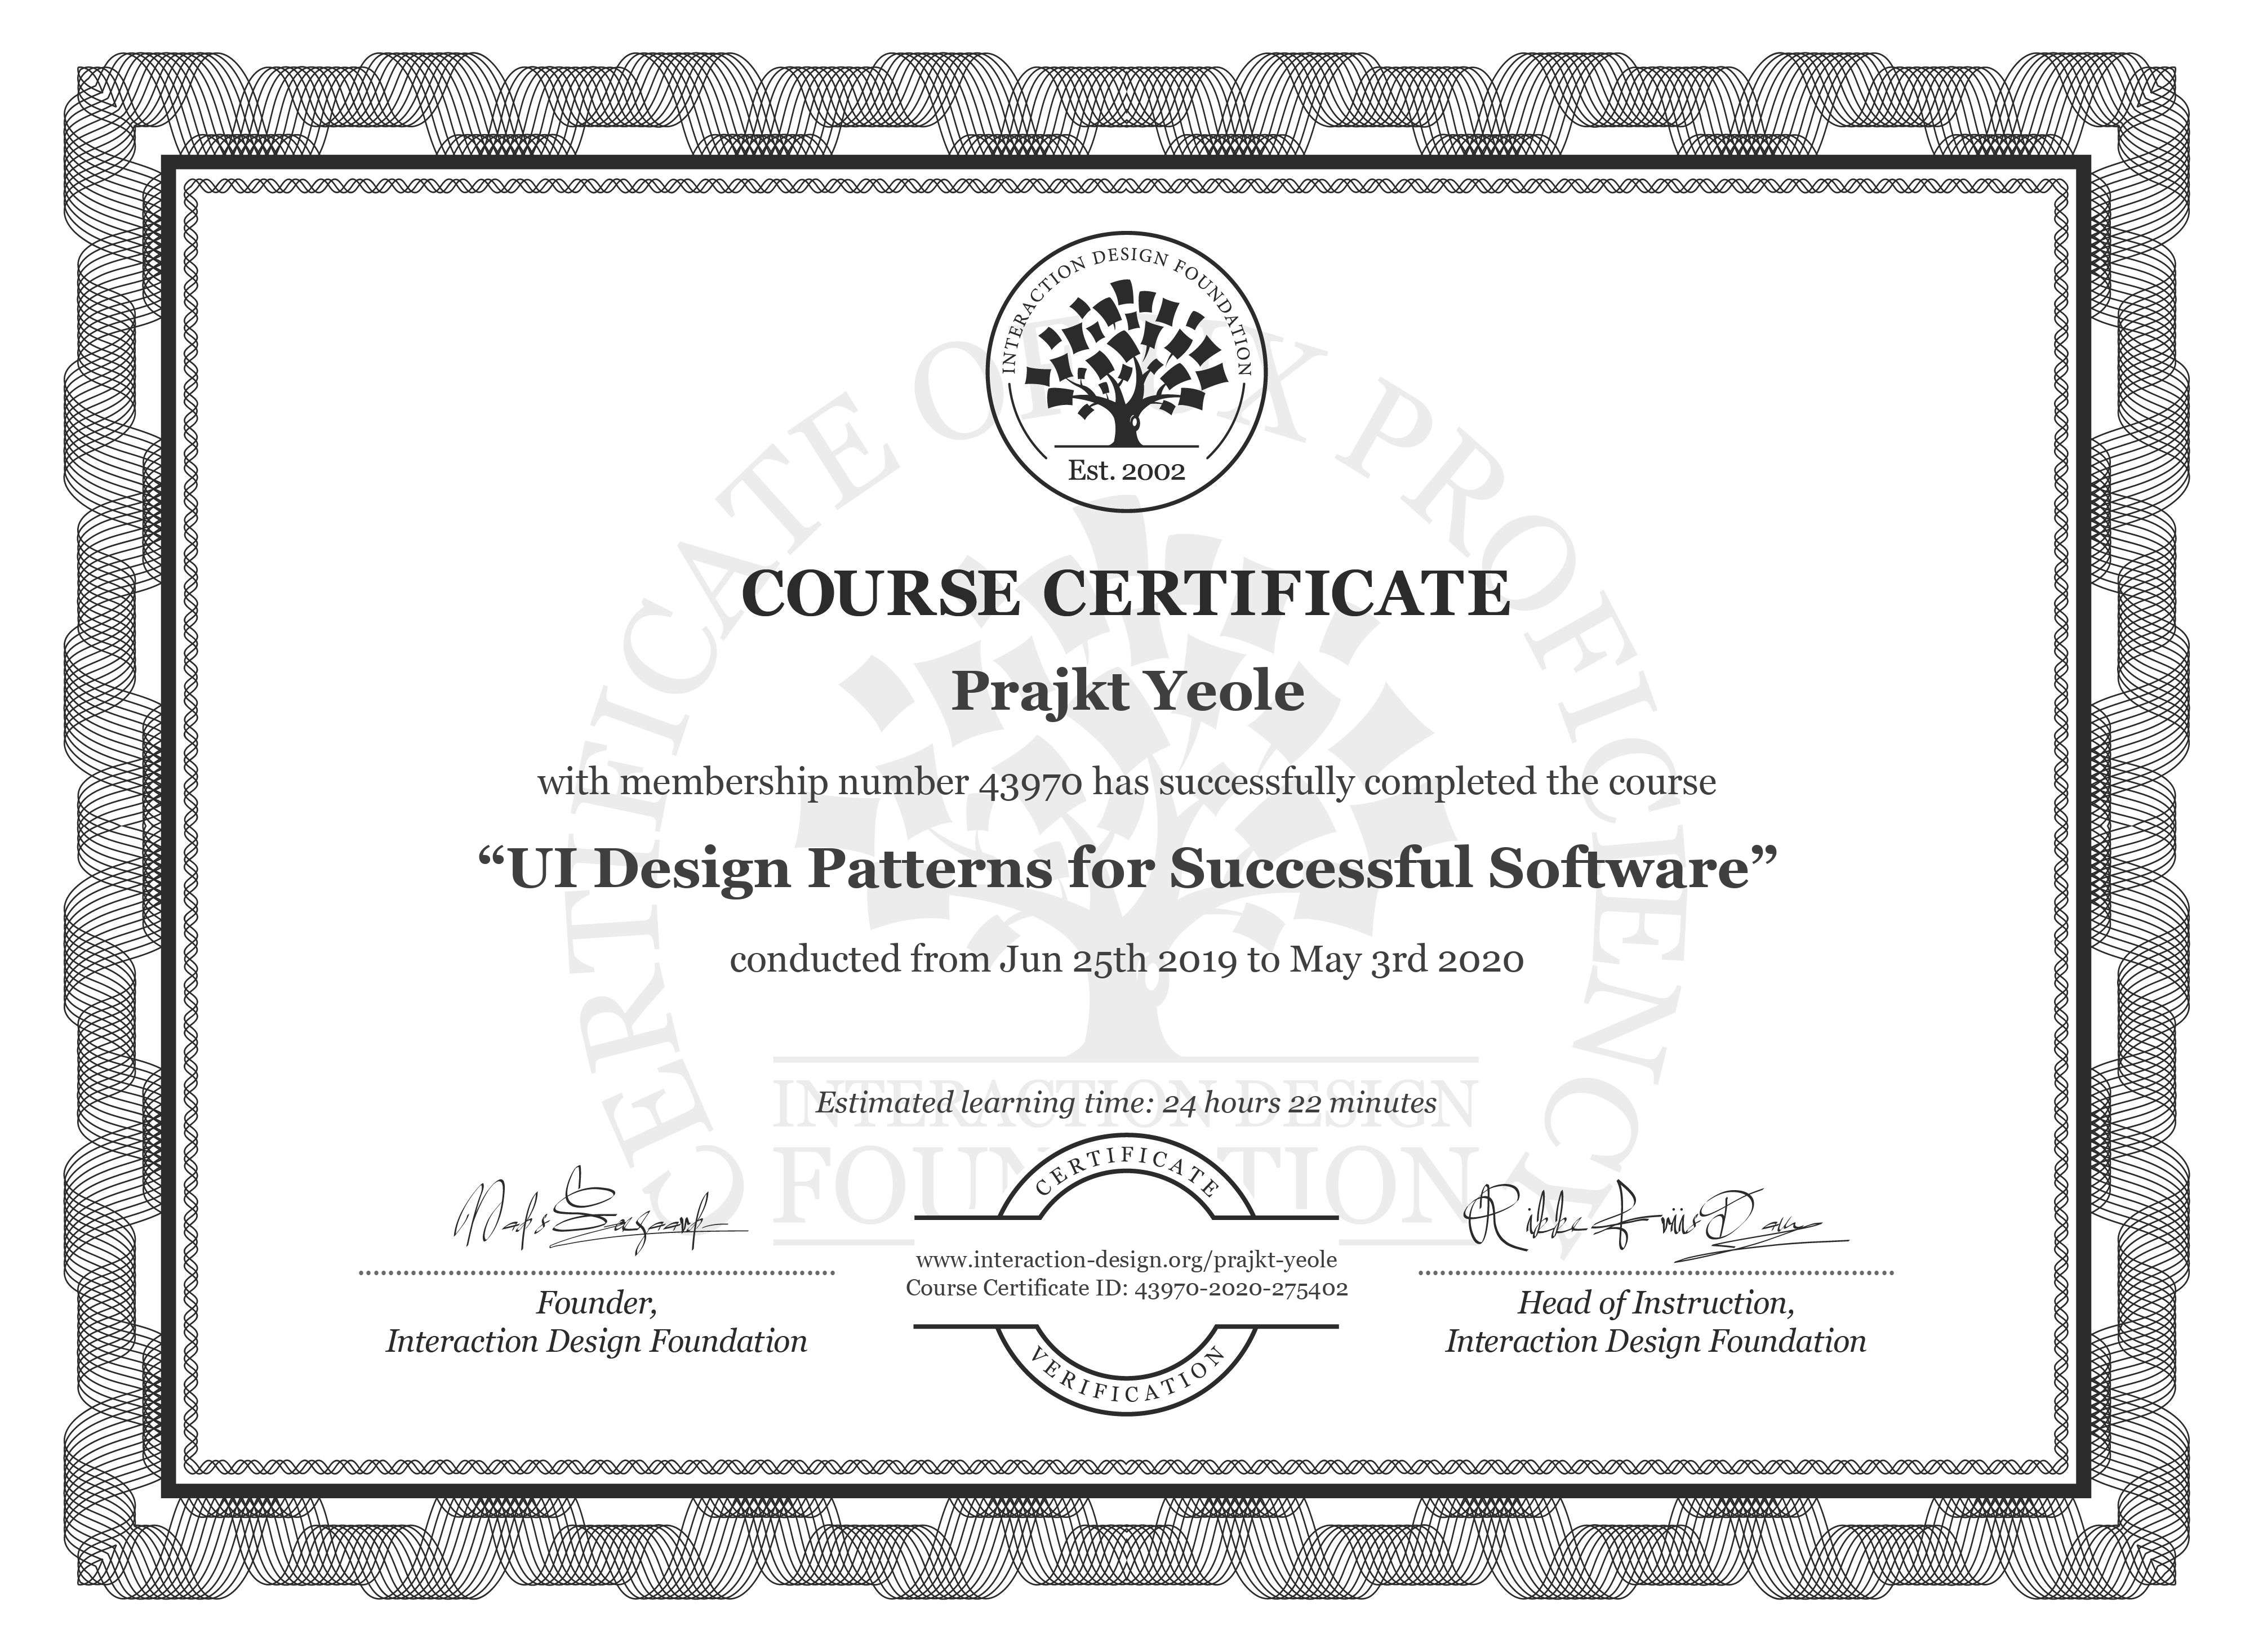 Prajkt Yeole's Course Certificate: UI Design Patterns for Successful Software